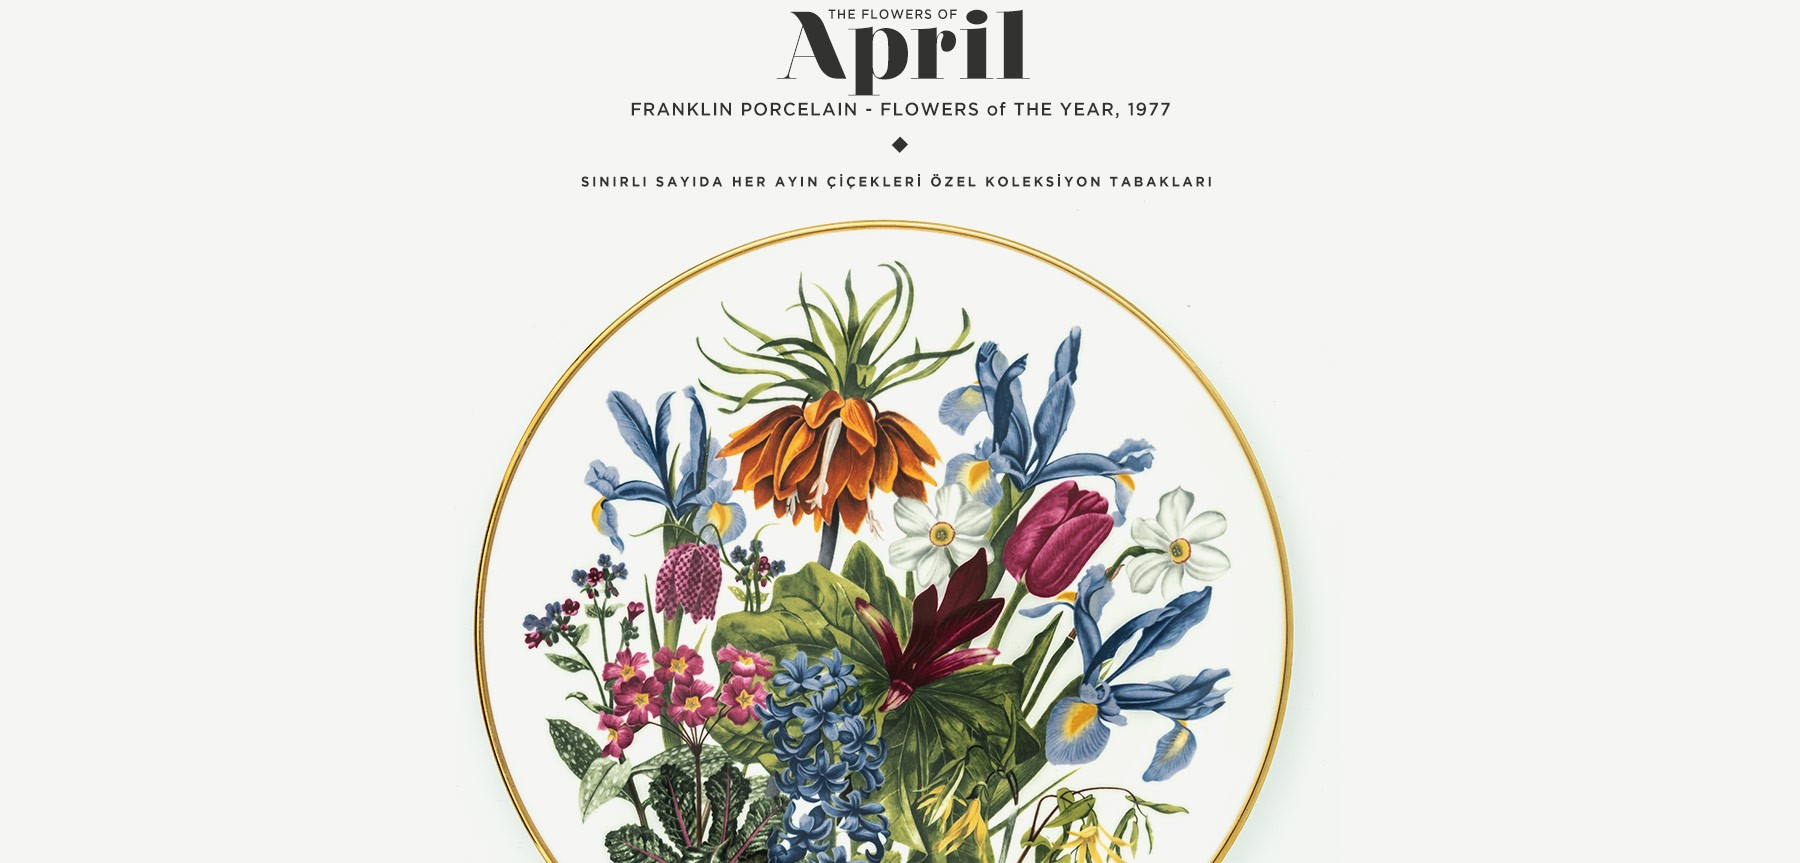 Nisan'da Açan Çiçekler The Flowers Of April'in resmi